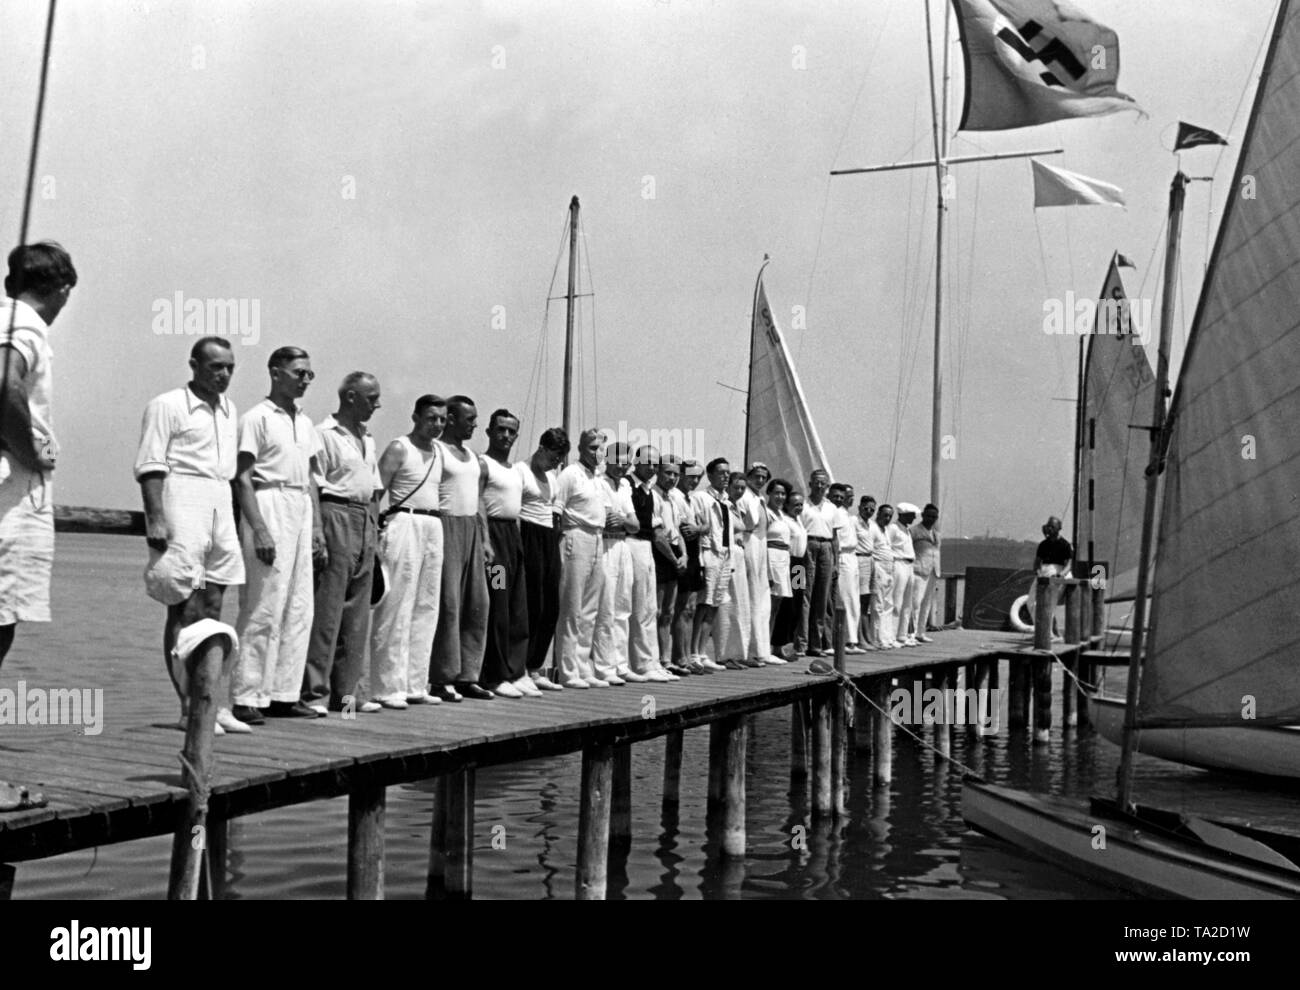 View of participants in a sailing course of the Nazi organization 'Kraft durch Freude' ('Strength through Joy') in Diessen am Ammersee. Photographer: Georg Schoedl. - Stock Image